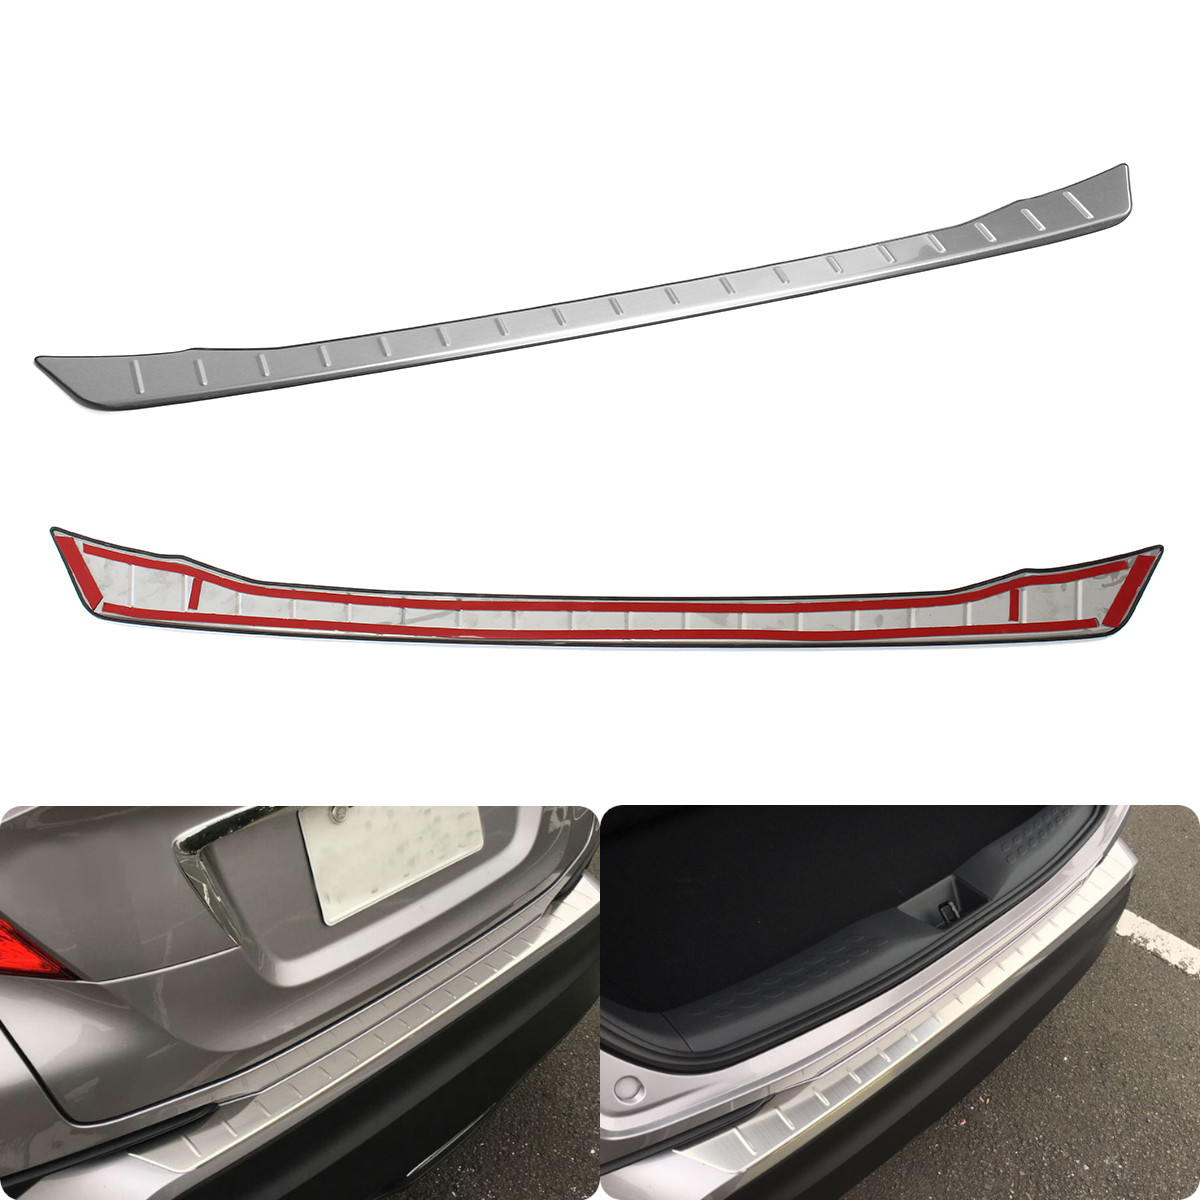 Stainless Steel Rear Trunk Pad Wheel Fender Backplate Protective Guard Plate Trim For Toyota CHR 2016 2017 2018|Trunk trim| |  -